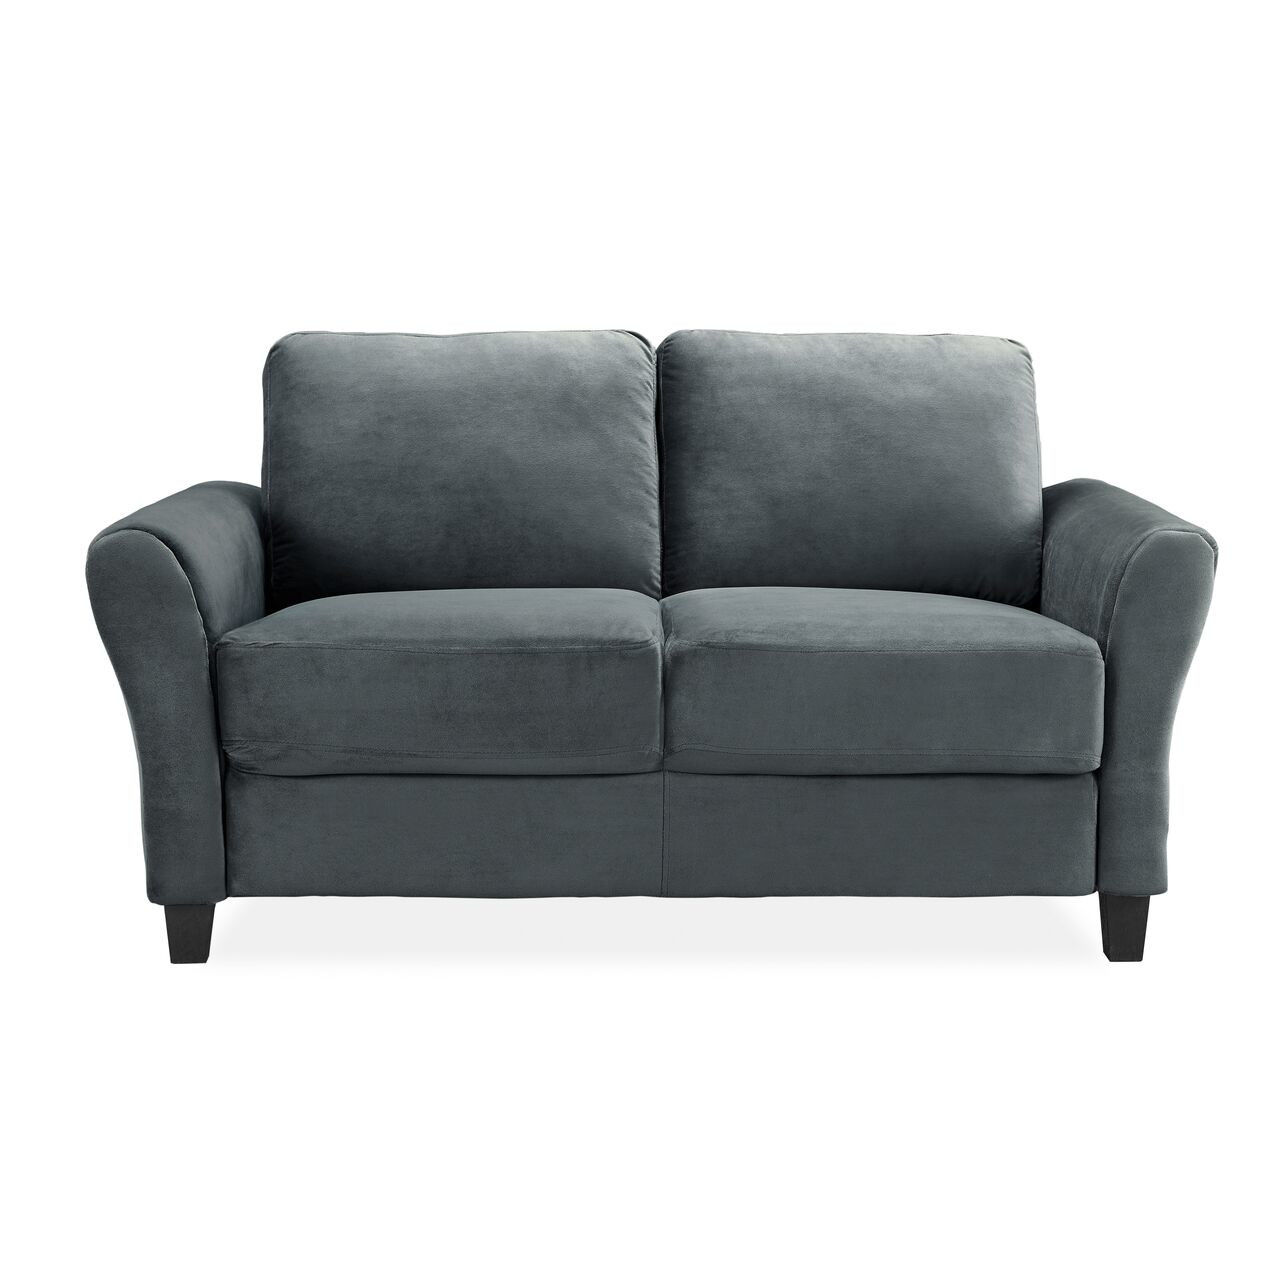 fresh simmons harbortown sofa décor-Elegant Simmons Harbortown sofa Plan